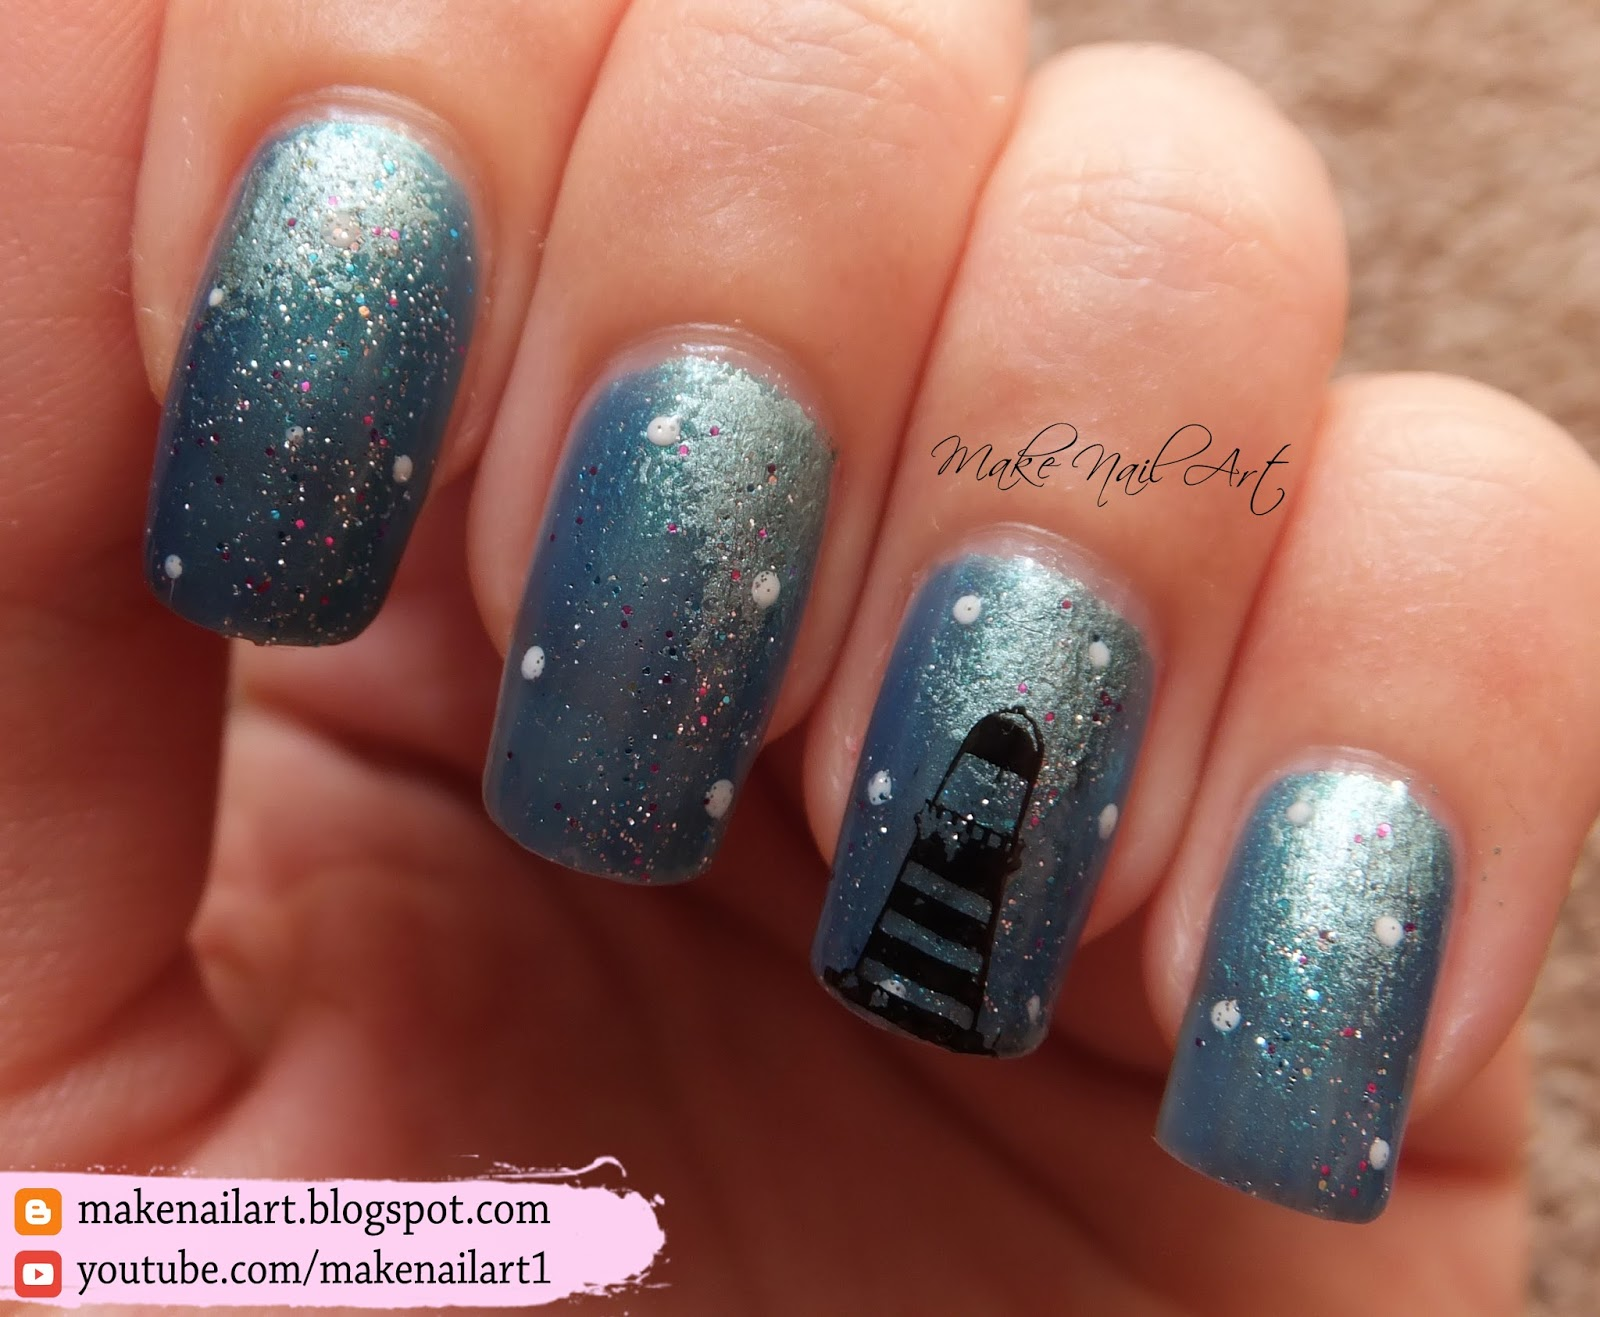 Make Nail Art: September 2016